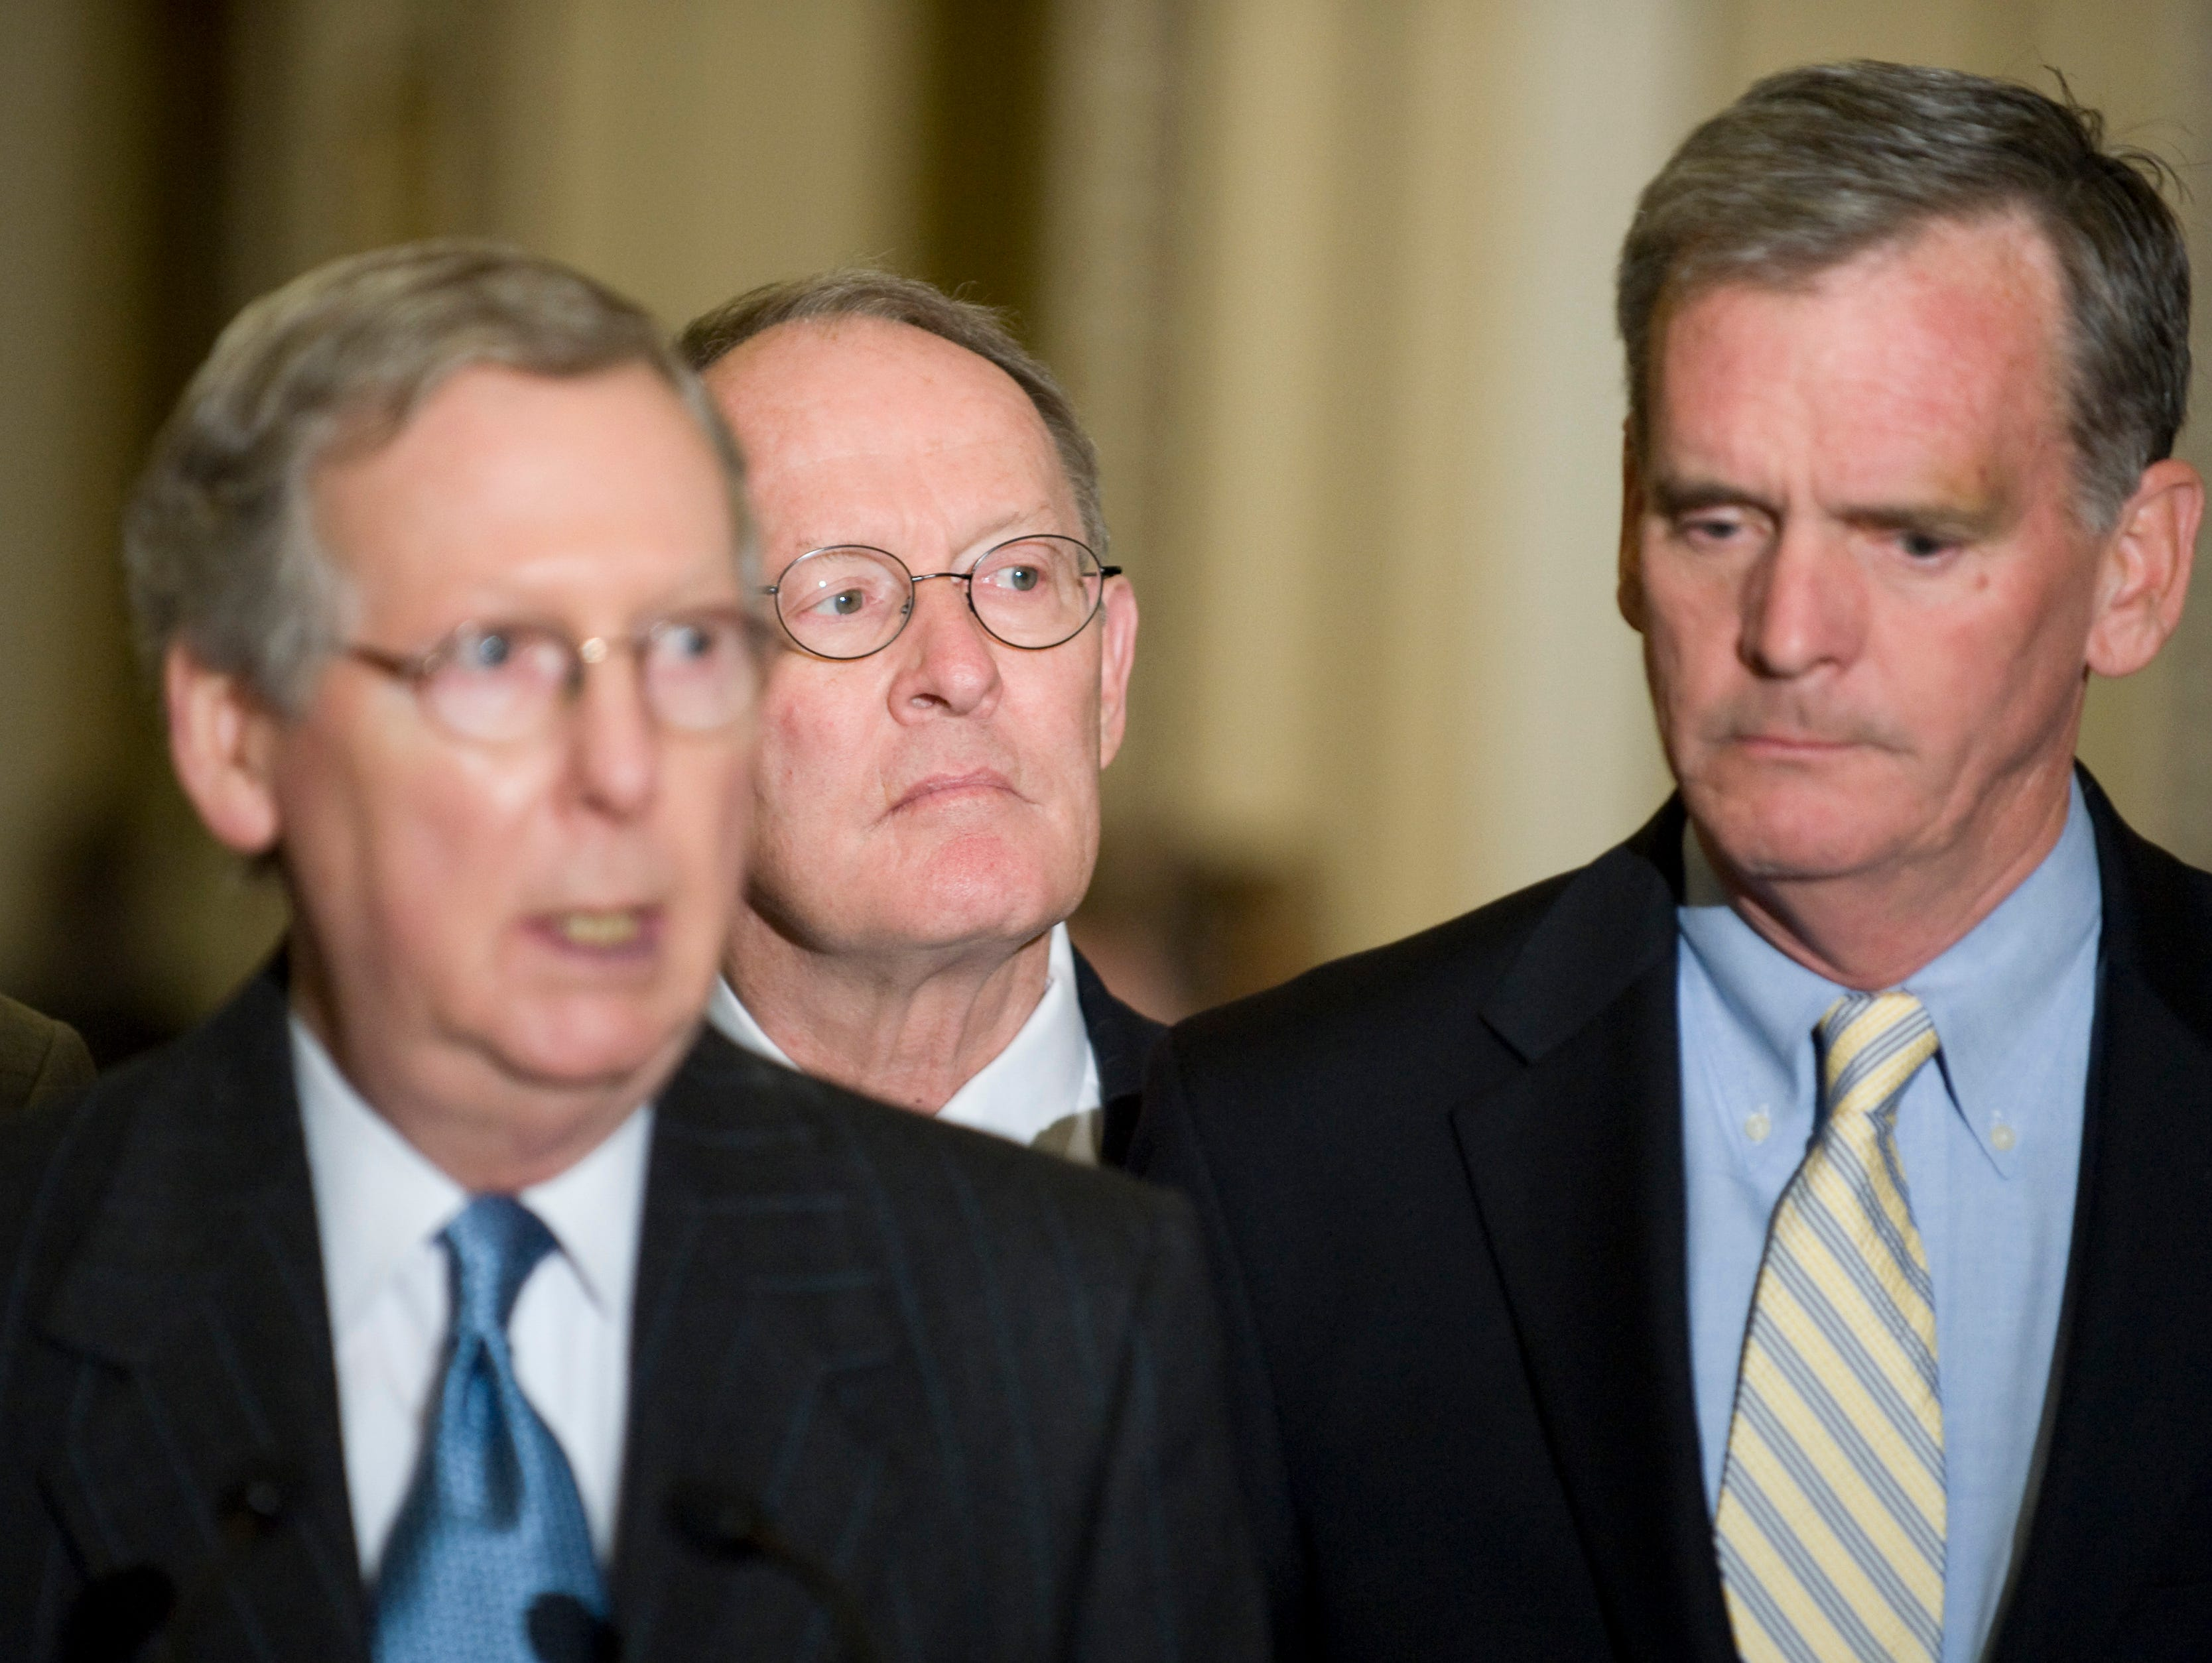 Sen. Lamar Alexander, R-Tenn., flanked by Senate Minority Leader Mitch McConnell, R-Ky., left, and Sen. Judd Gregg, R-N.H., for the Senate Republican leaders' weekly news conference following the Senate Republican Policy Luncheon on Tuesday, May 20, 2008.